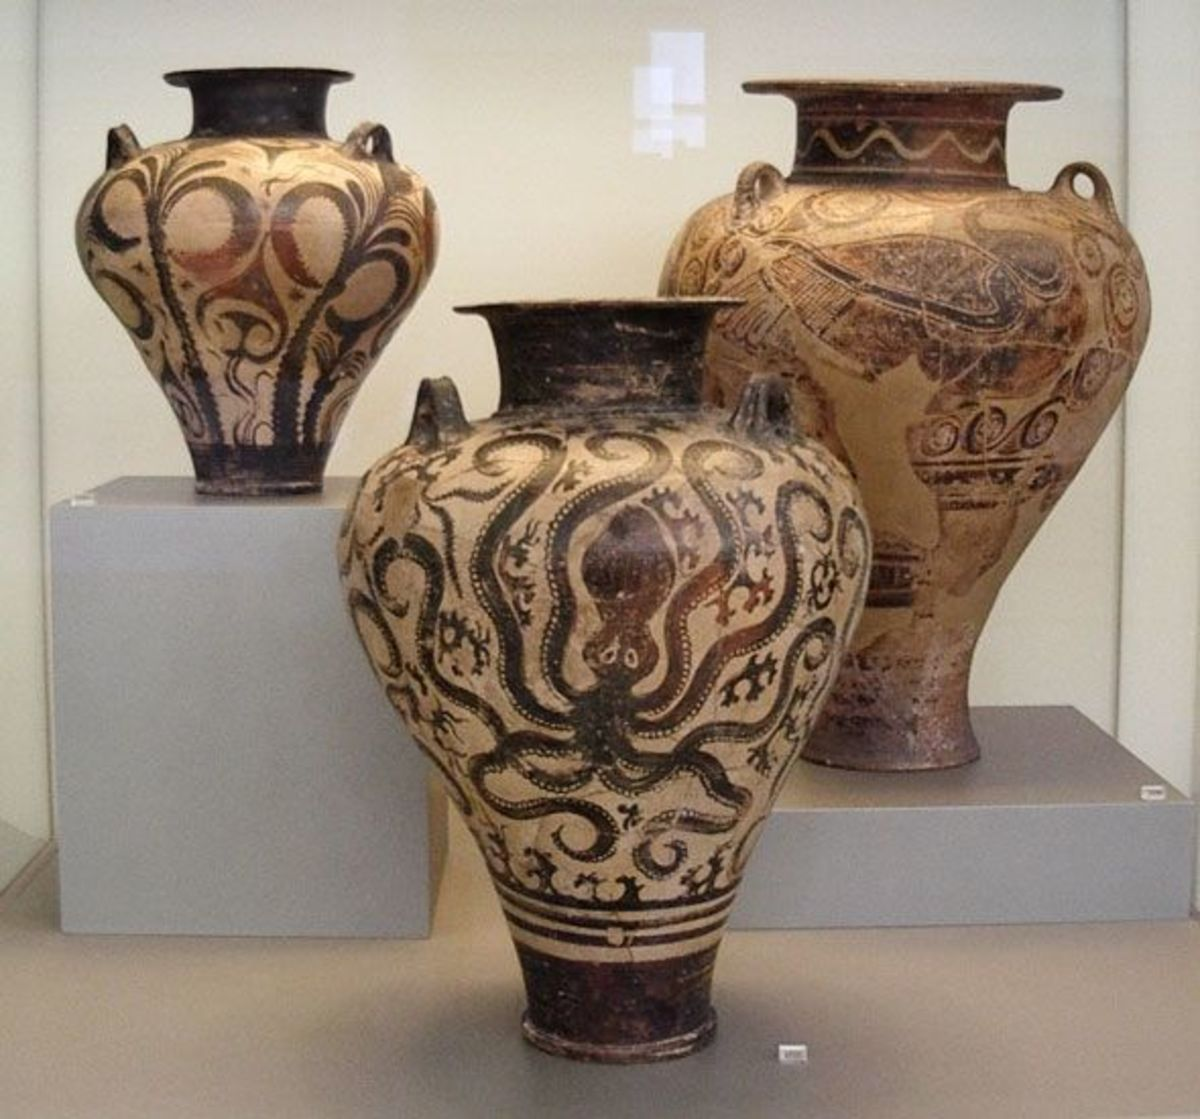 "Minoan ""Palace style,"" 15th century BCE. By then the Mycenaeans had conquered the Minoan civilization on Crete, but marine and floral themes from older Minoan art continued."